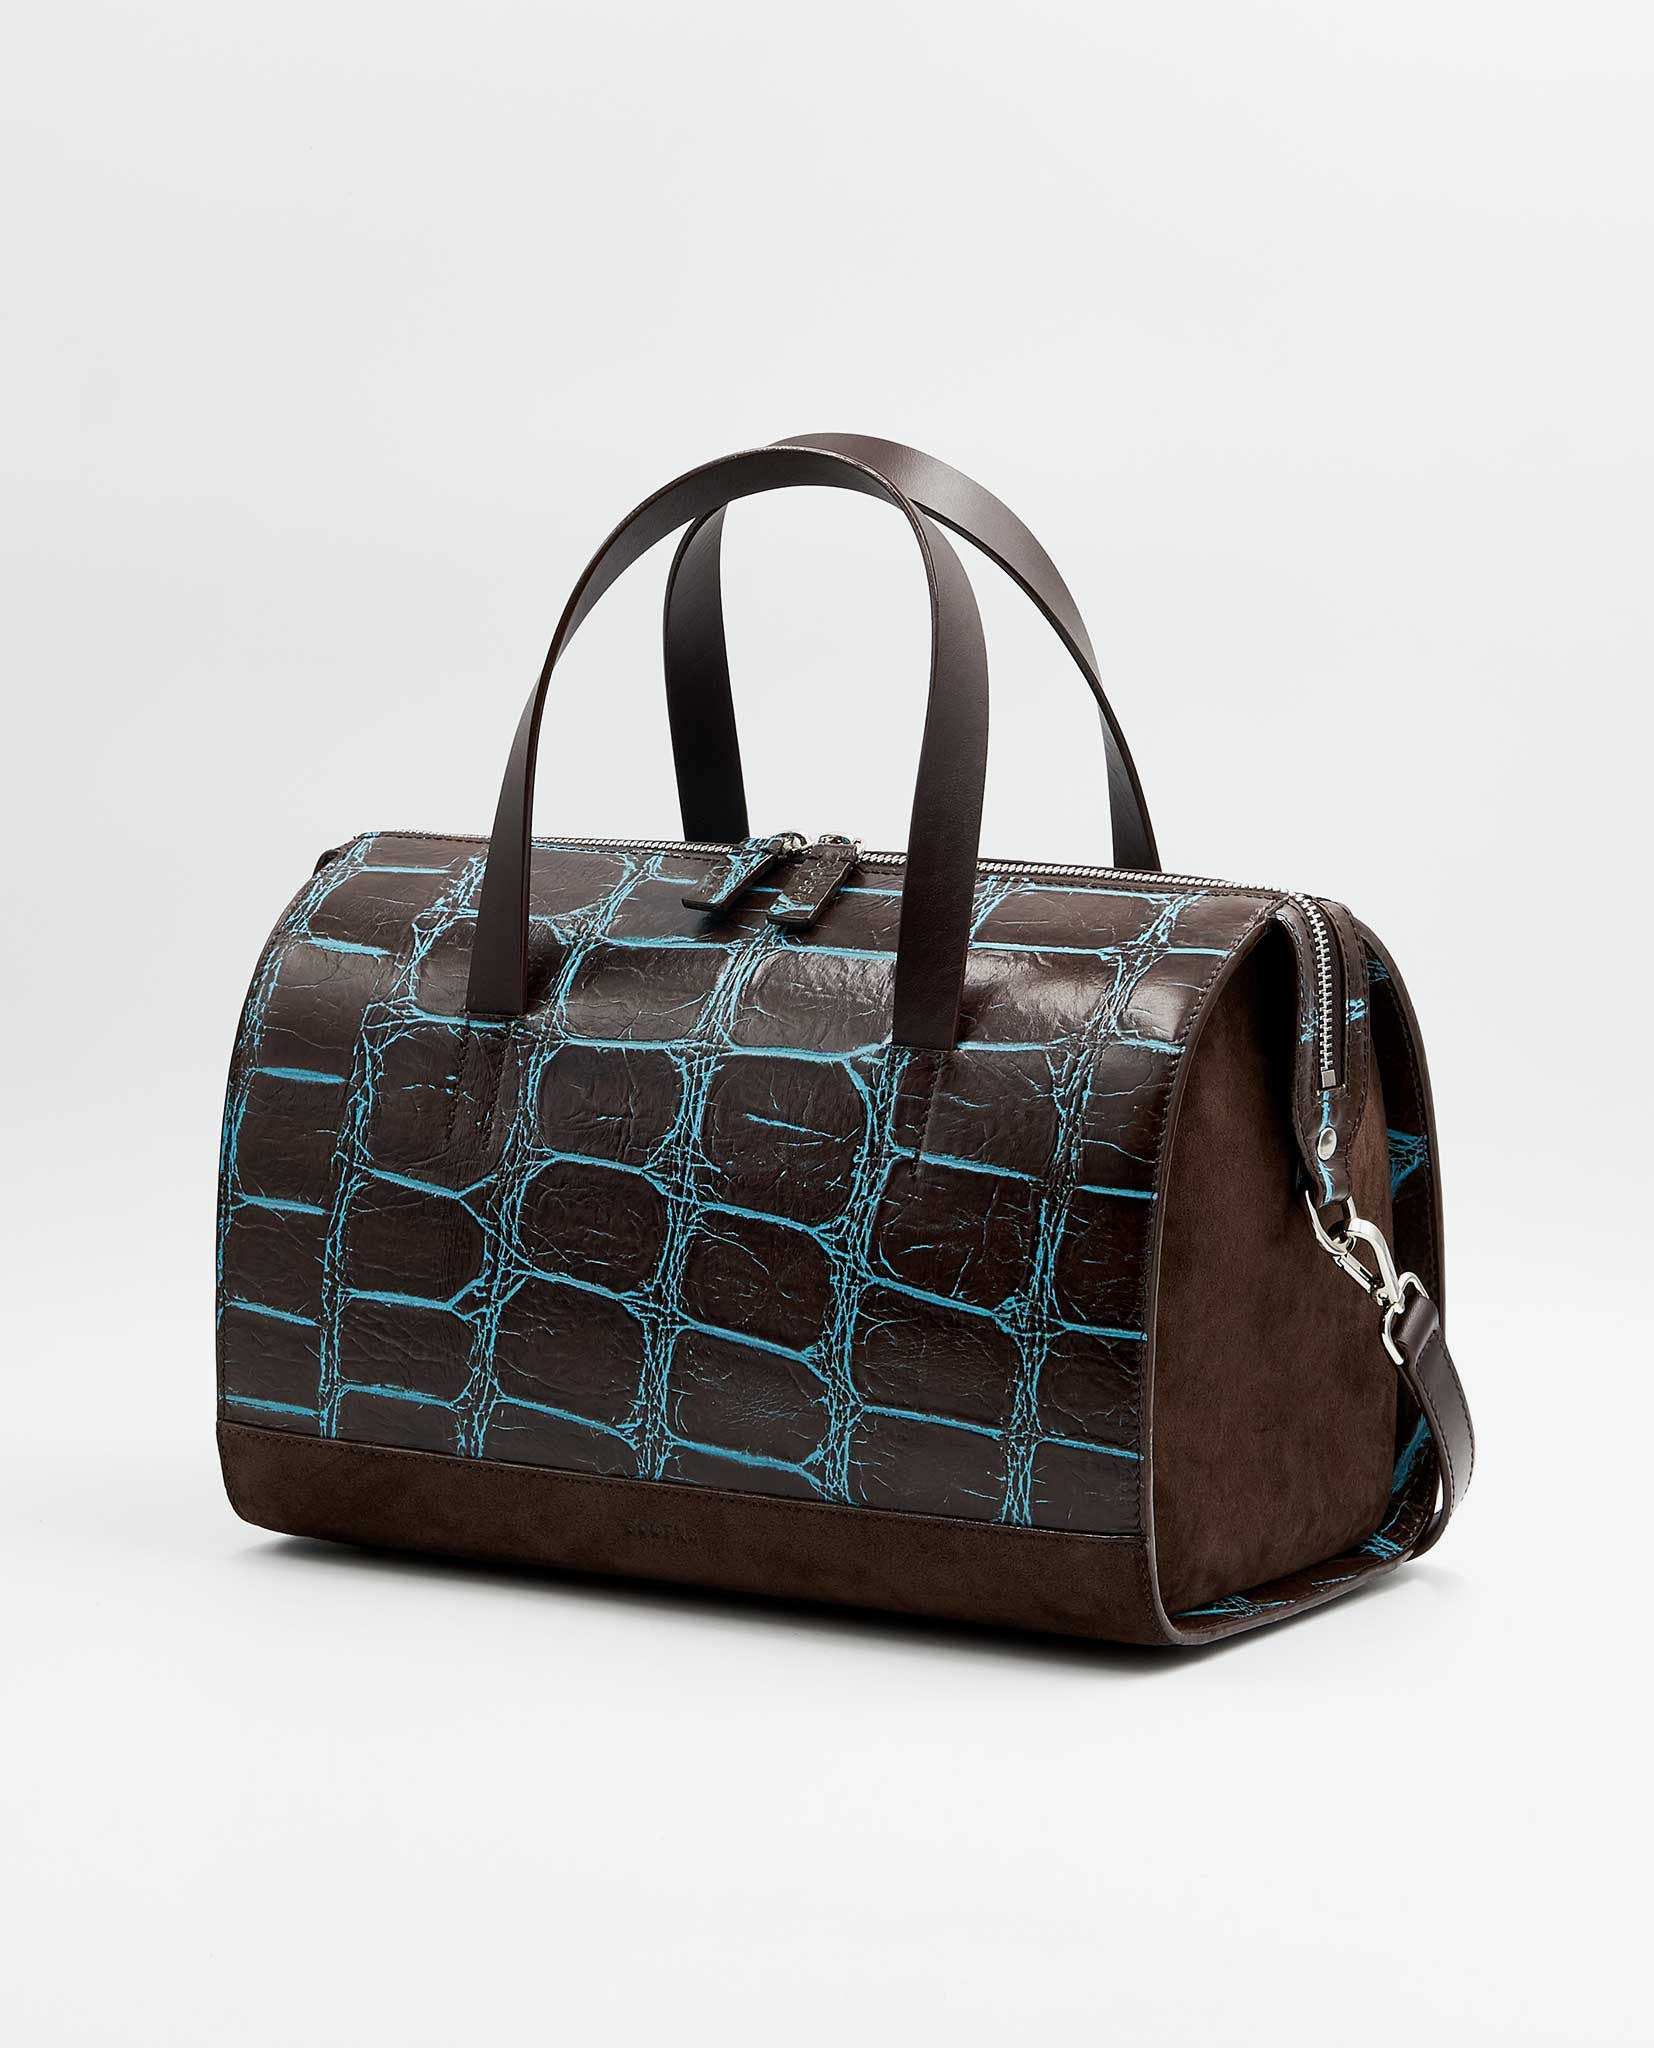 SOOFRE Berlin unique Bowler Bag croco brown / brown